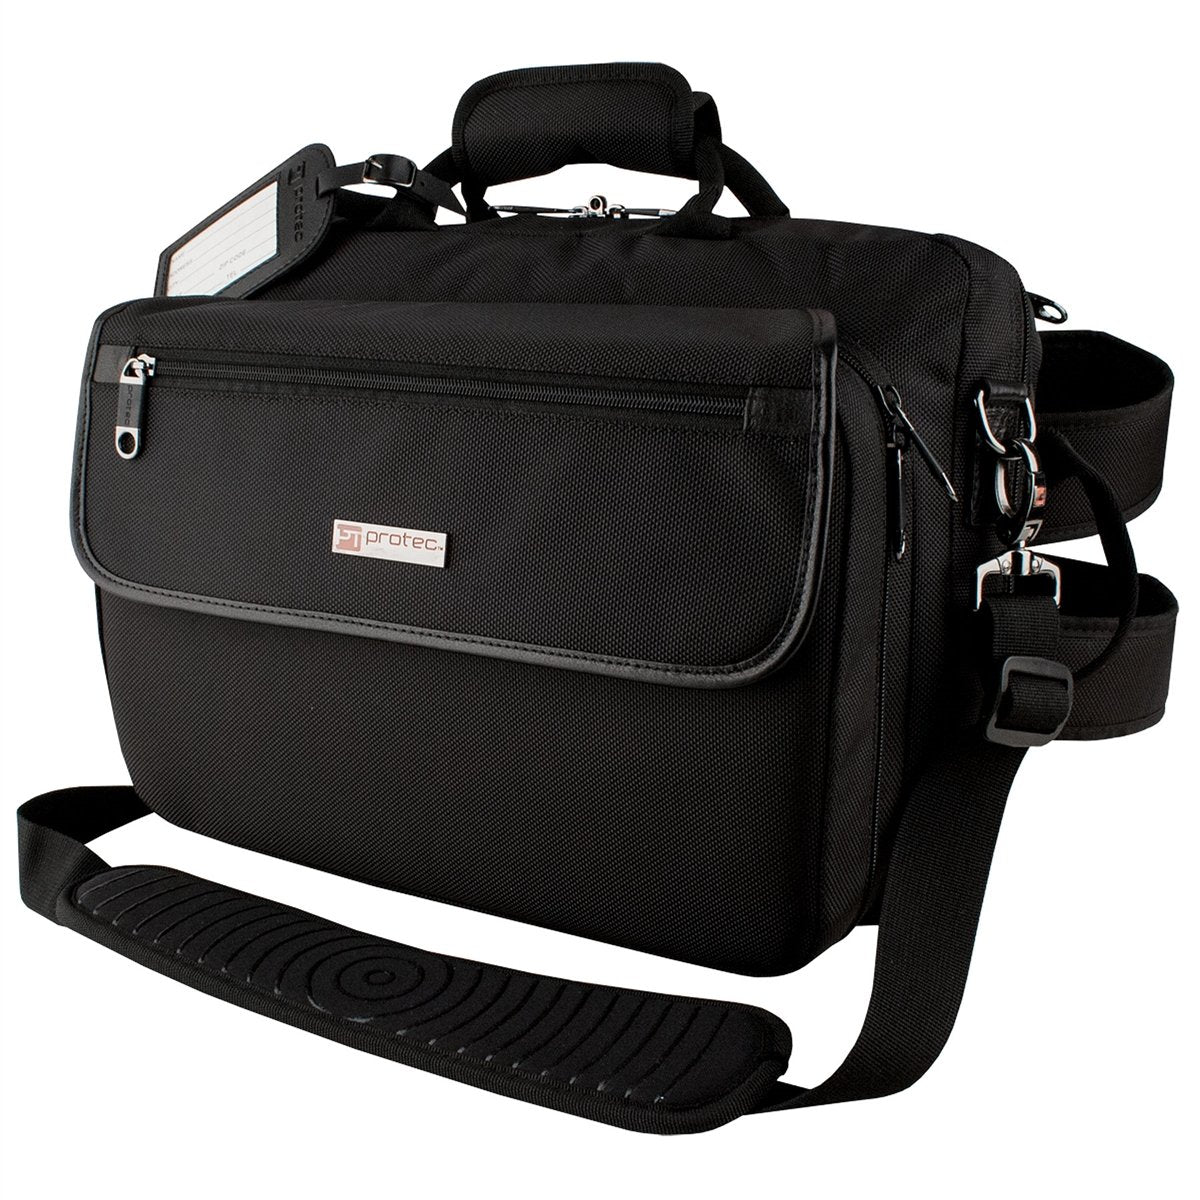 Protec - German Clarinet PRO PAC Case (LUX Version with Messenger)-Accessories-Protec-Music Elements